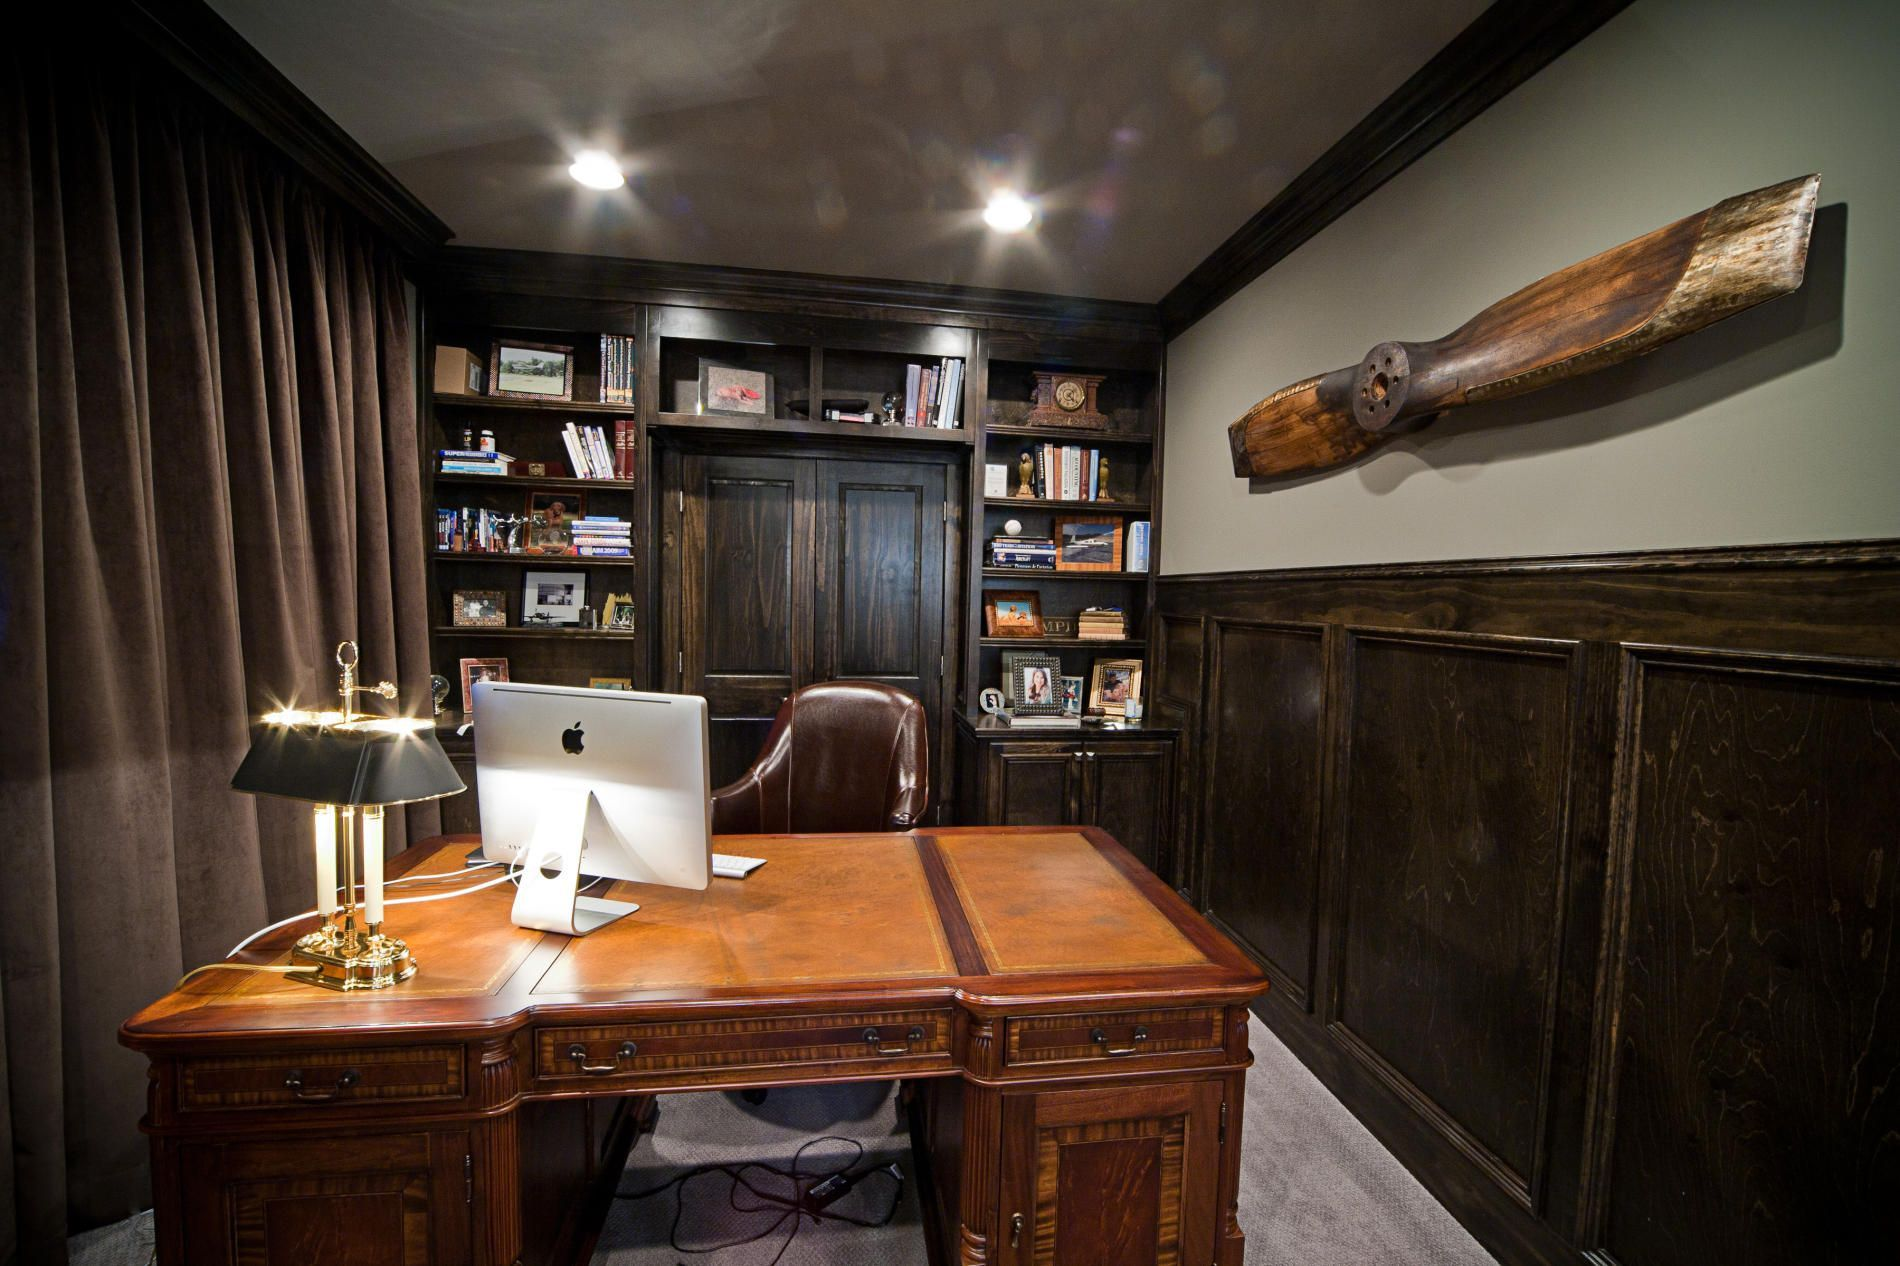 manly office. By Dark Wood And Chocolate-Brown Hues, This Masculine Office Inspiring Small Home Manly E